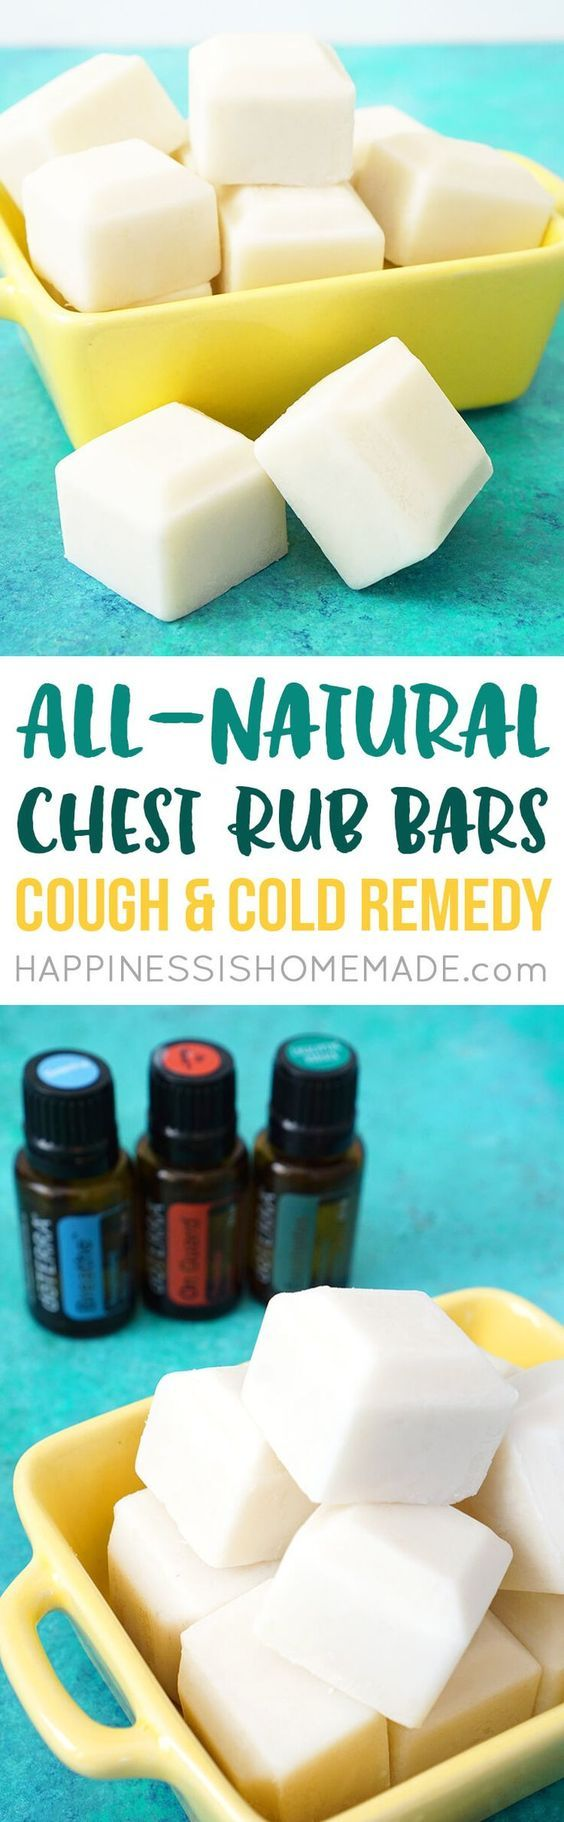 All-Natural Chest Rub Bars: Cough & Cold Remedy. These DIY chest rub bars are a healthy homemade cold remedy for coughing and congestion. Made with all-natural and non-toxic ingredients including shea butter, coconut oil, beeswax, and essential oil. Would use Young living instead.